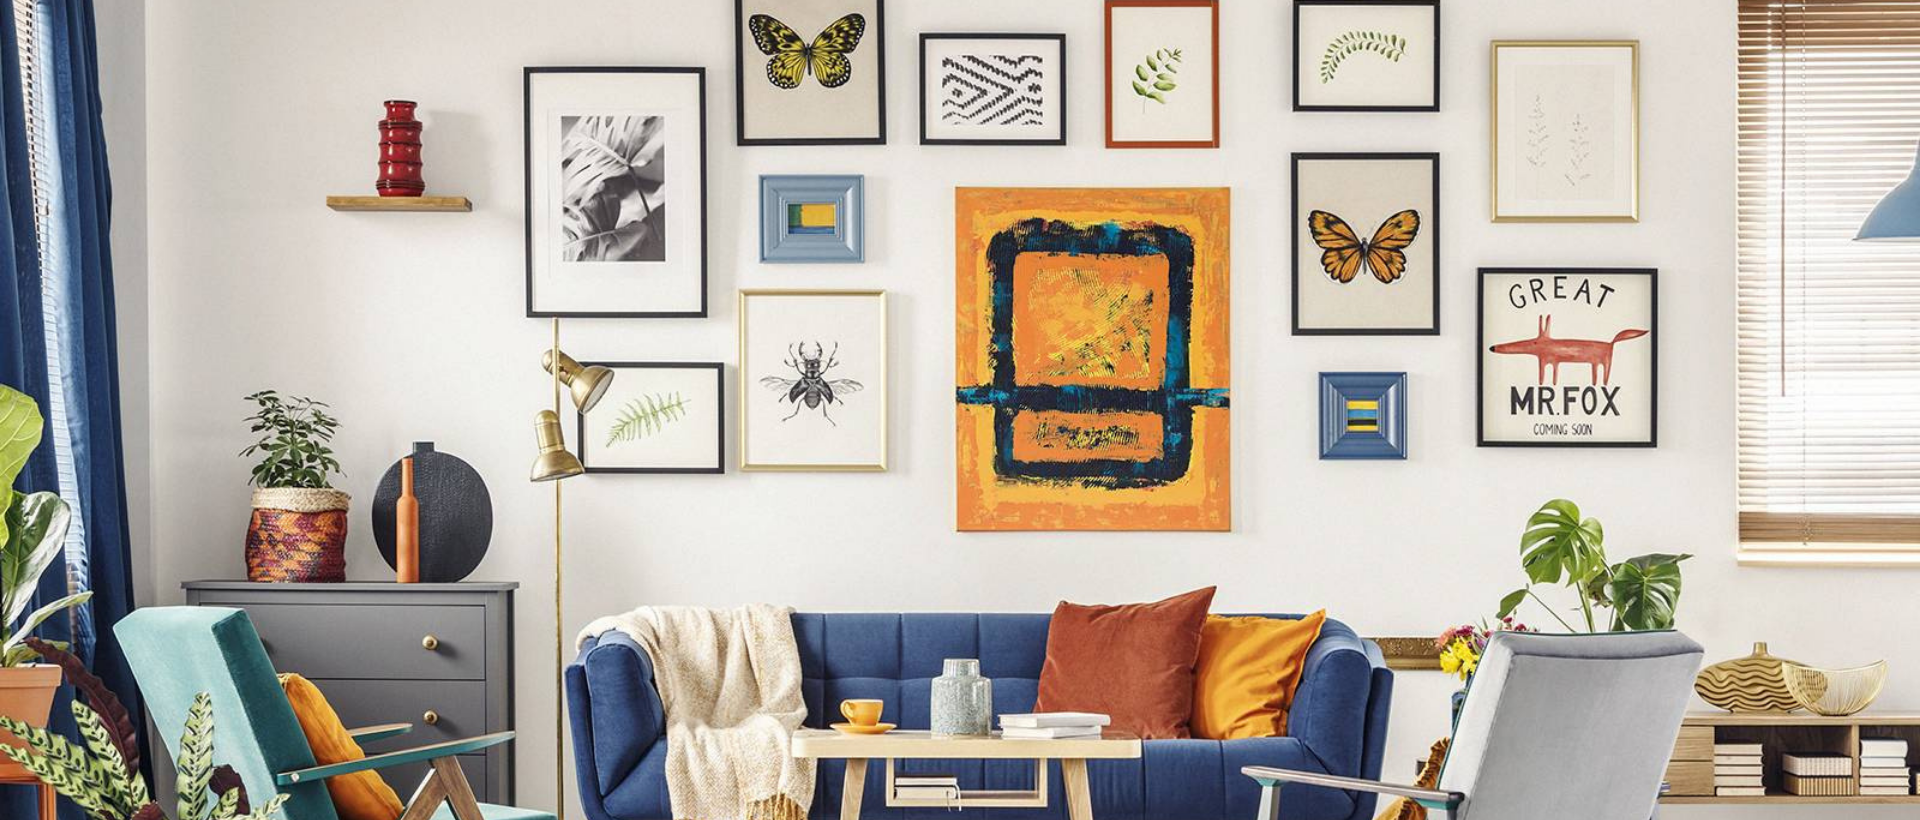 Wall with art pieces